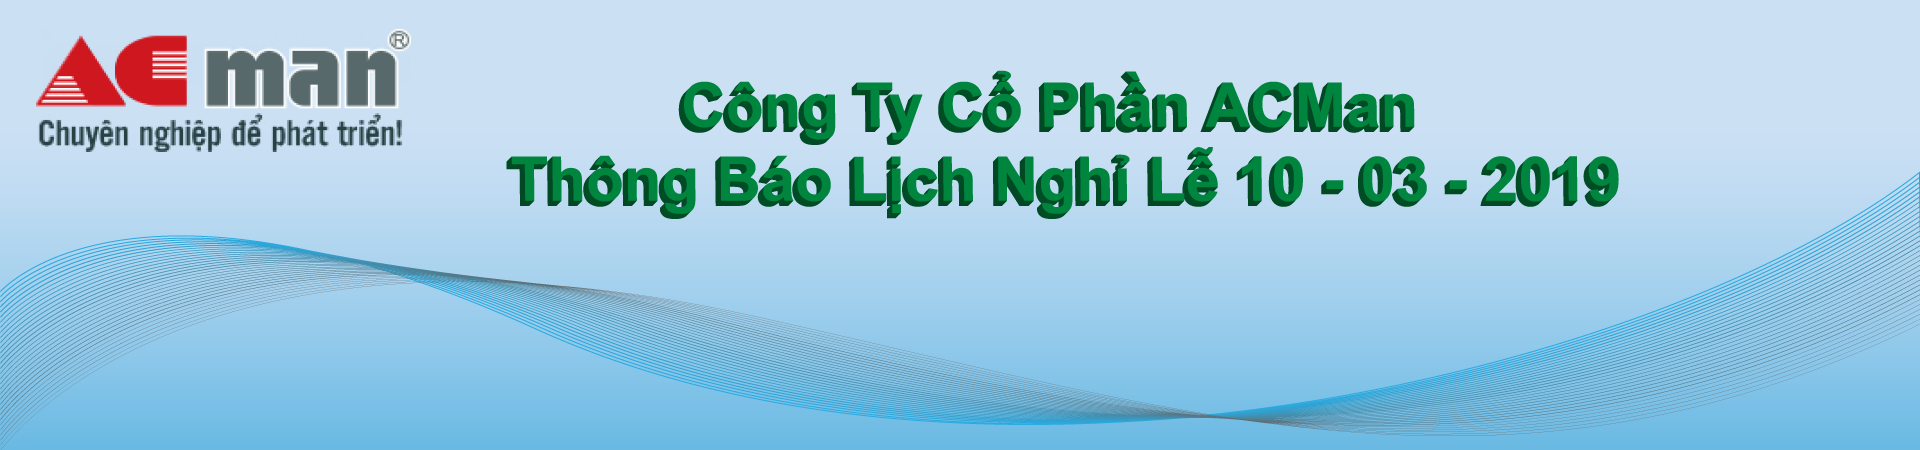 lịch-nghi-le-10-3